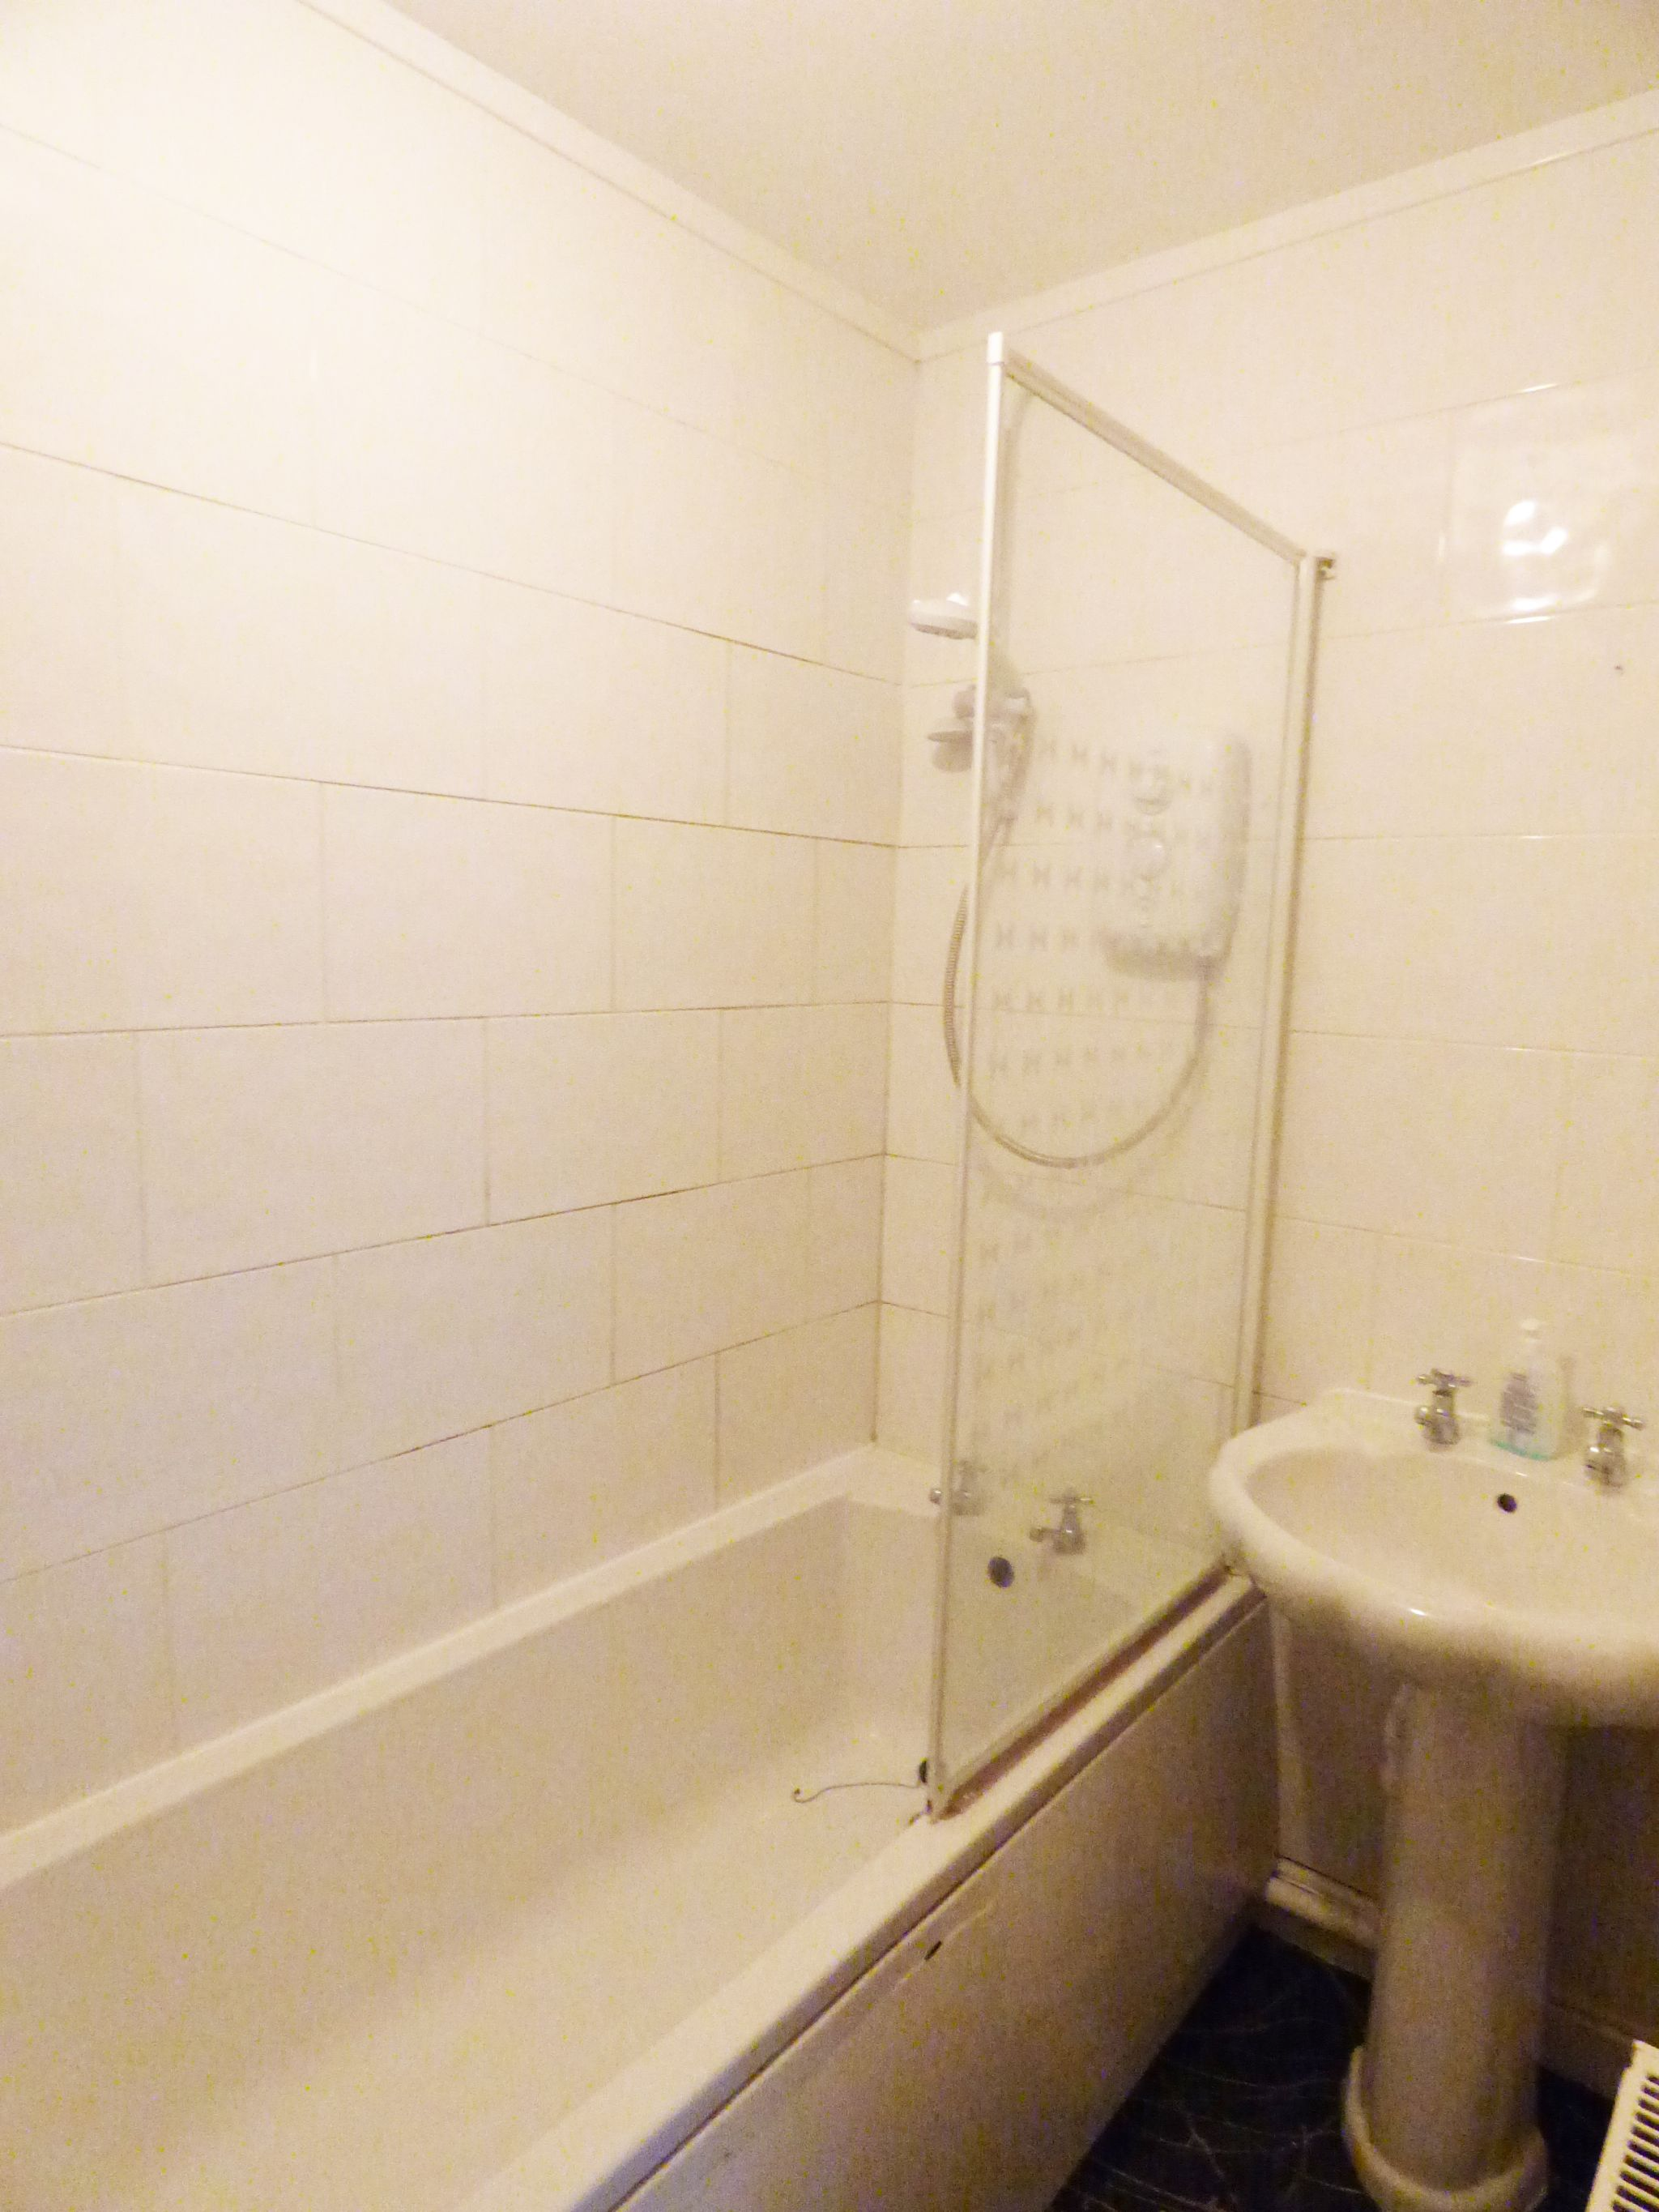 2 Bedroom Mid Terraced House - Bath With Shower Over